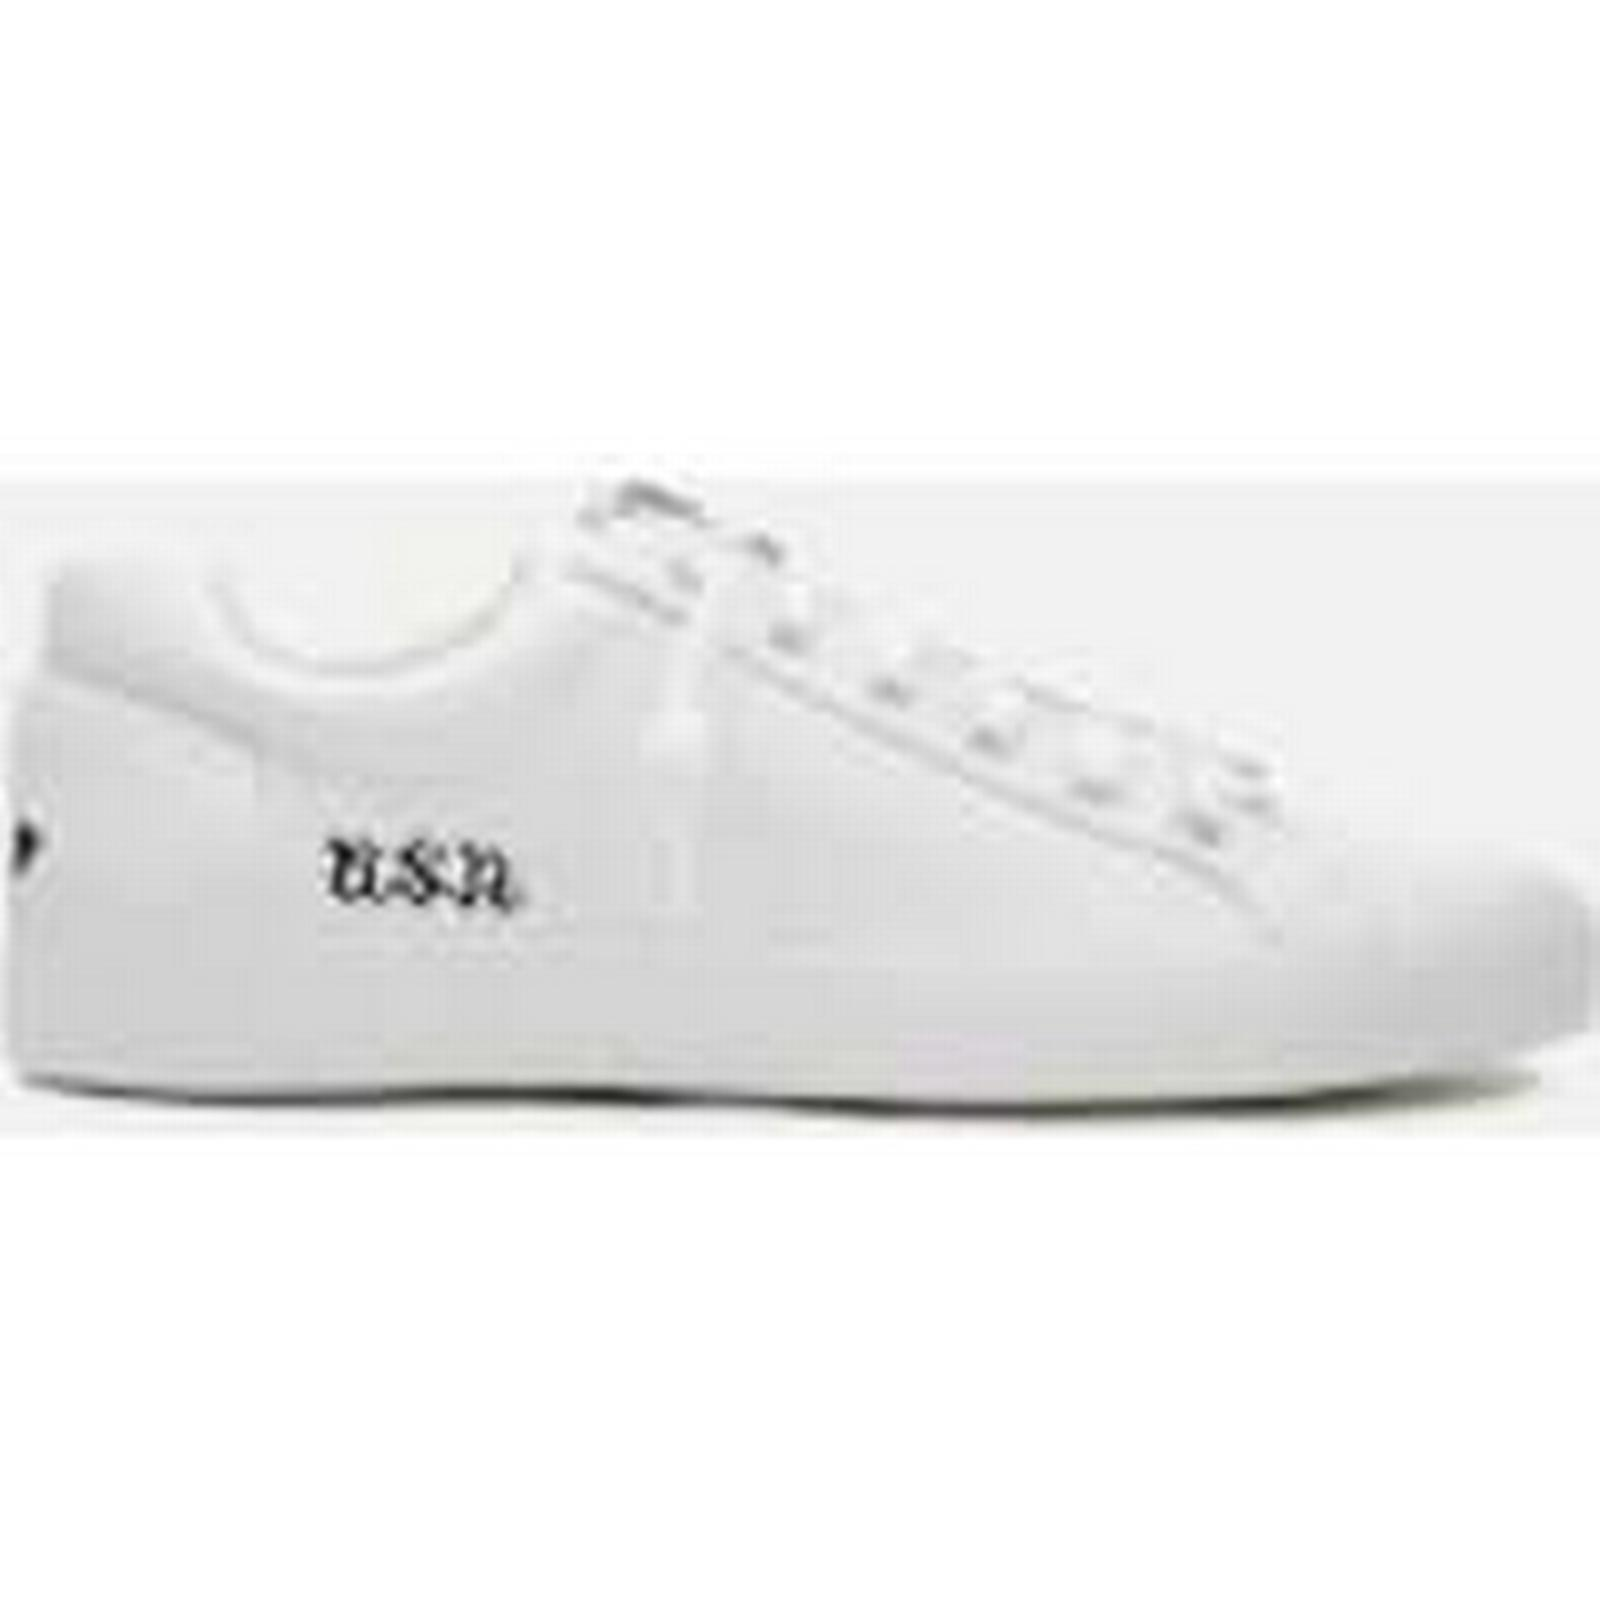 Ash Women's Nirvana Tumbled Leather Zip - Front Low Top Trainers - Zip White/Black - UK 6 - White cb9d09